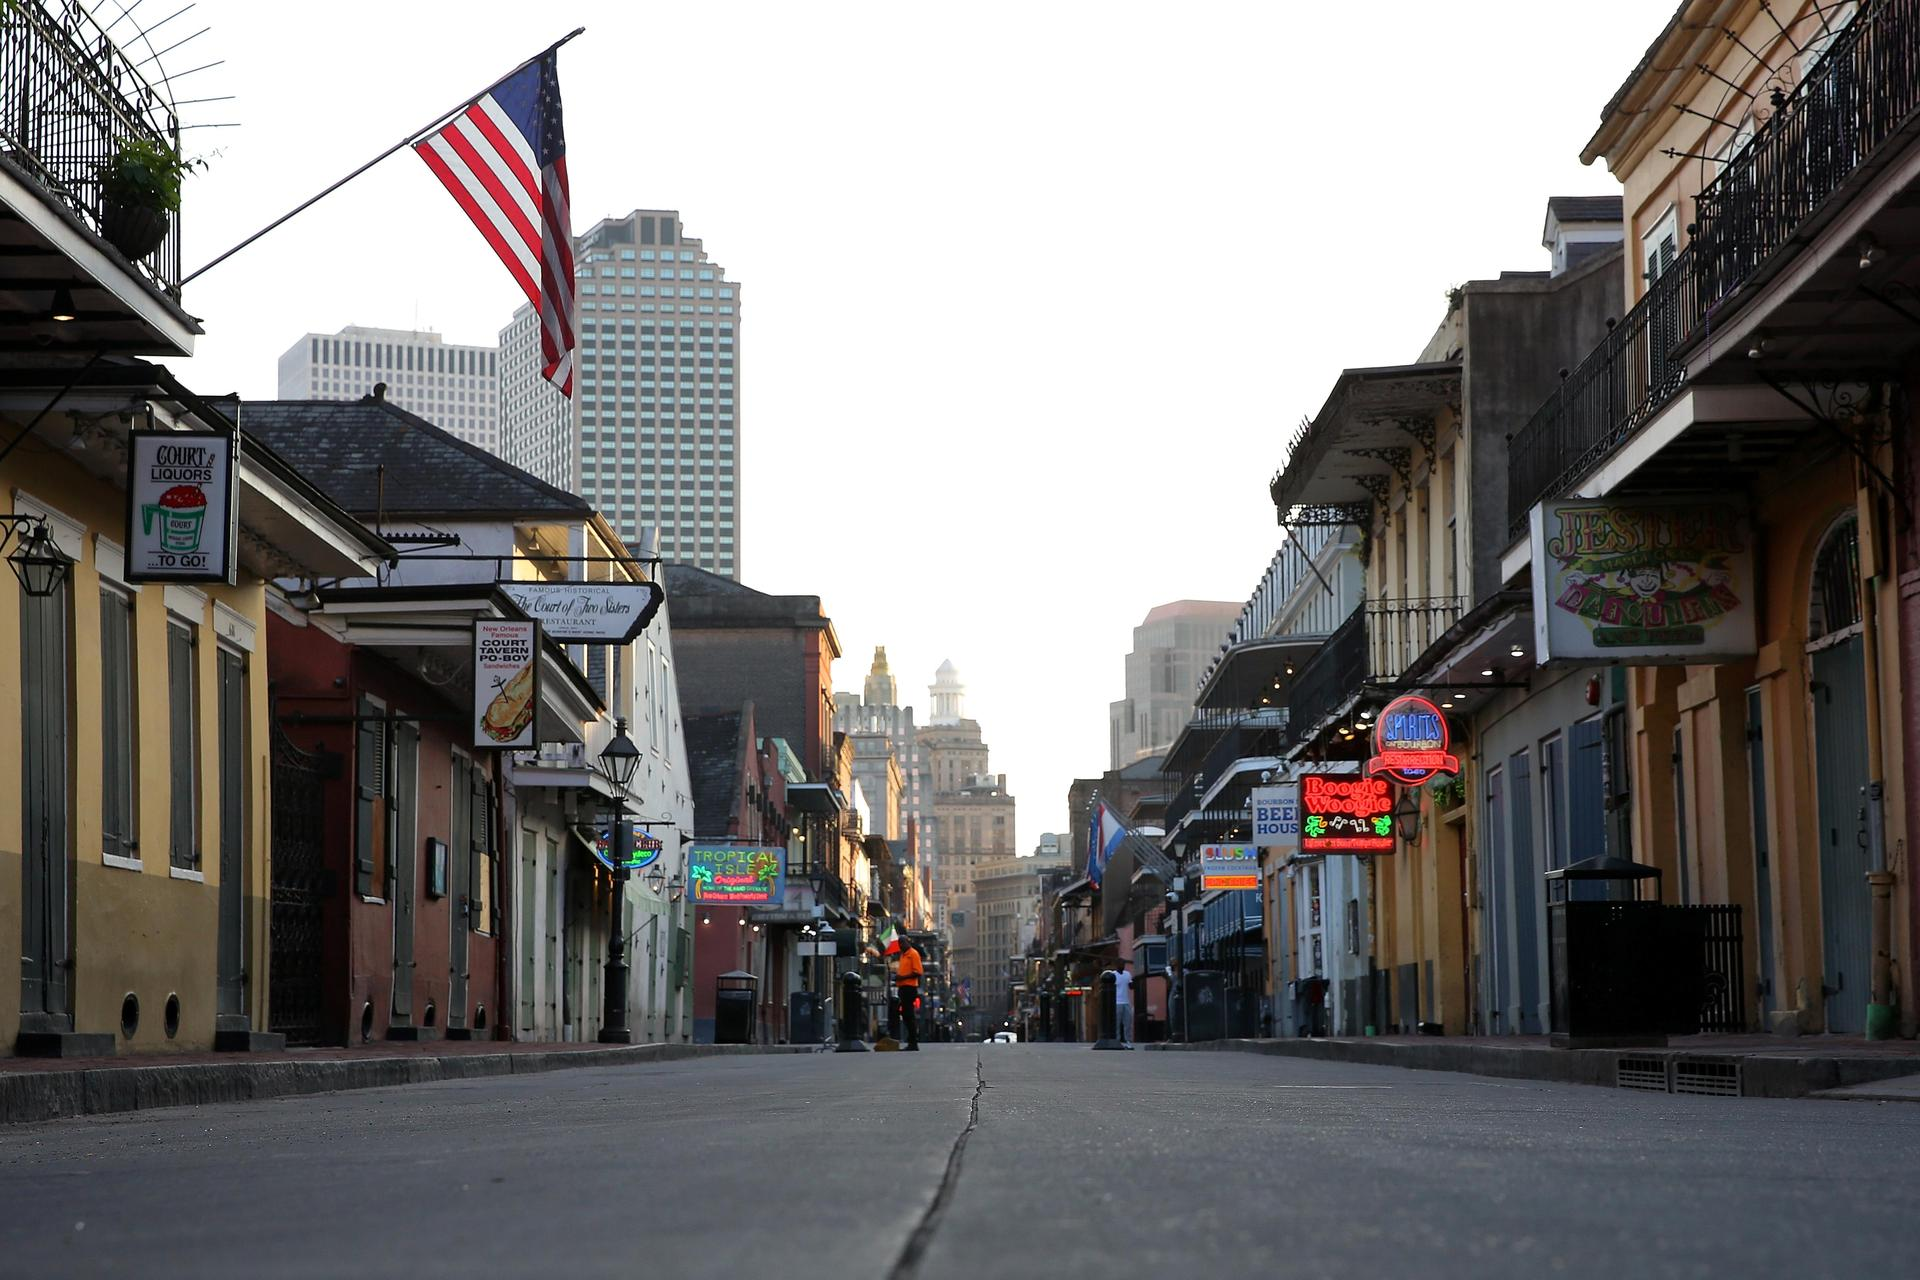 A view of Bourbon Street amid the COVID-19 pandemic in New Orleans, taken on March 25, 2020, by alumnus and award-winning photographer Jonathan Bachman '03. Licensed from REUTERS/Jonathan Bachman. See more of Jonathan's work at jonathanbachmanphotography.com.